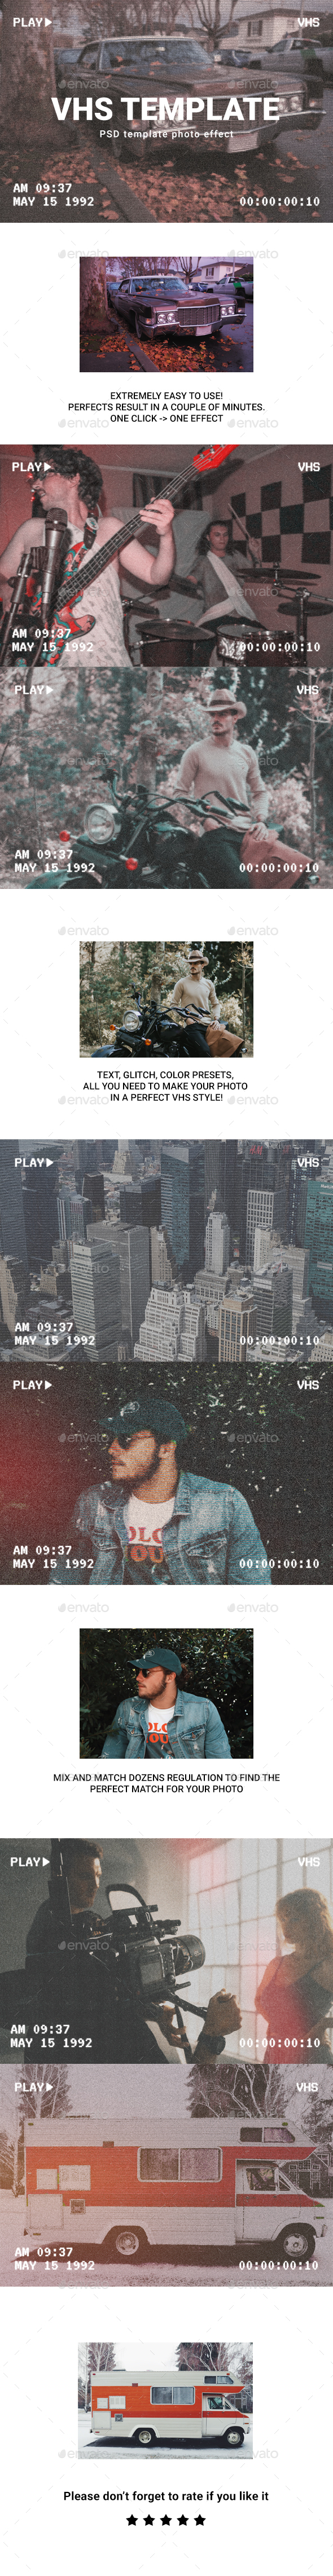 Vhs photo template